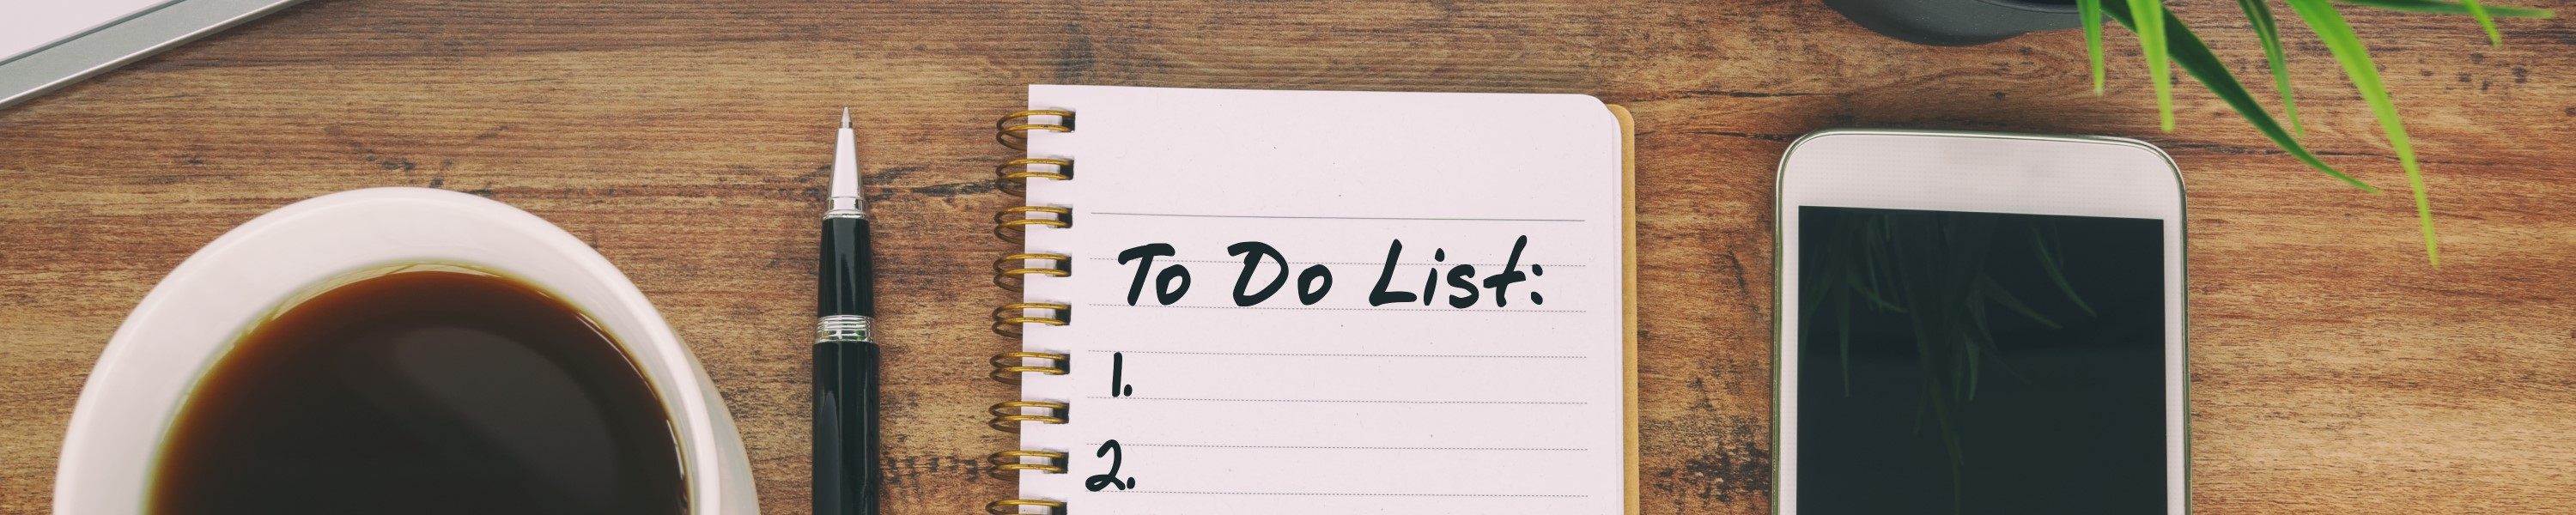 To-do list concept_banner [1055131558]